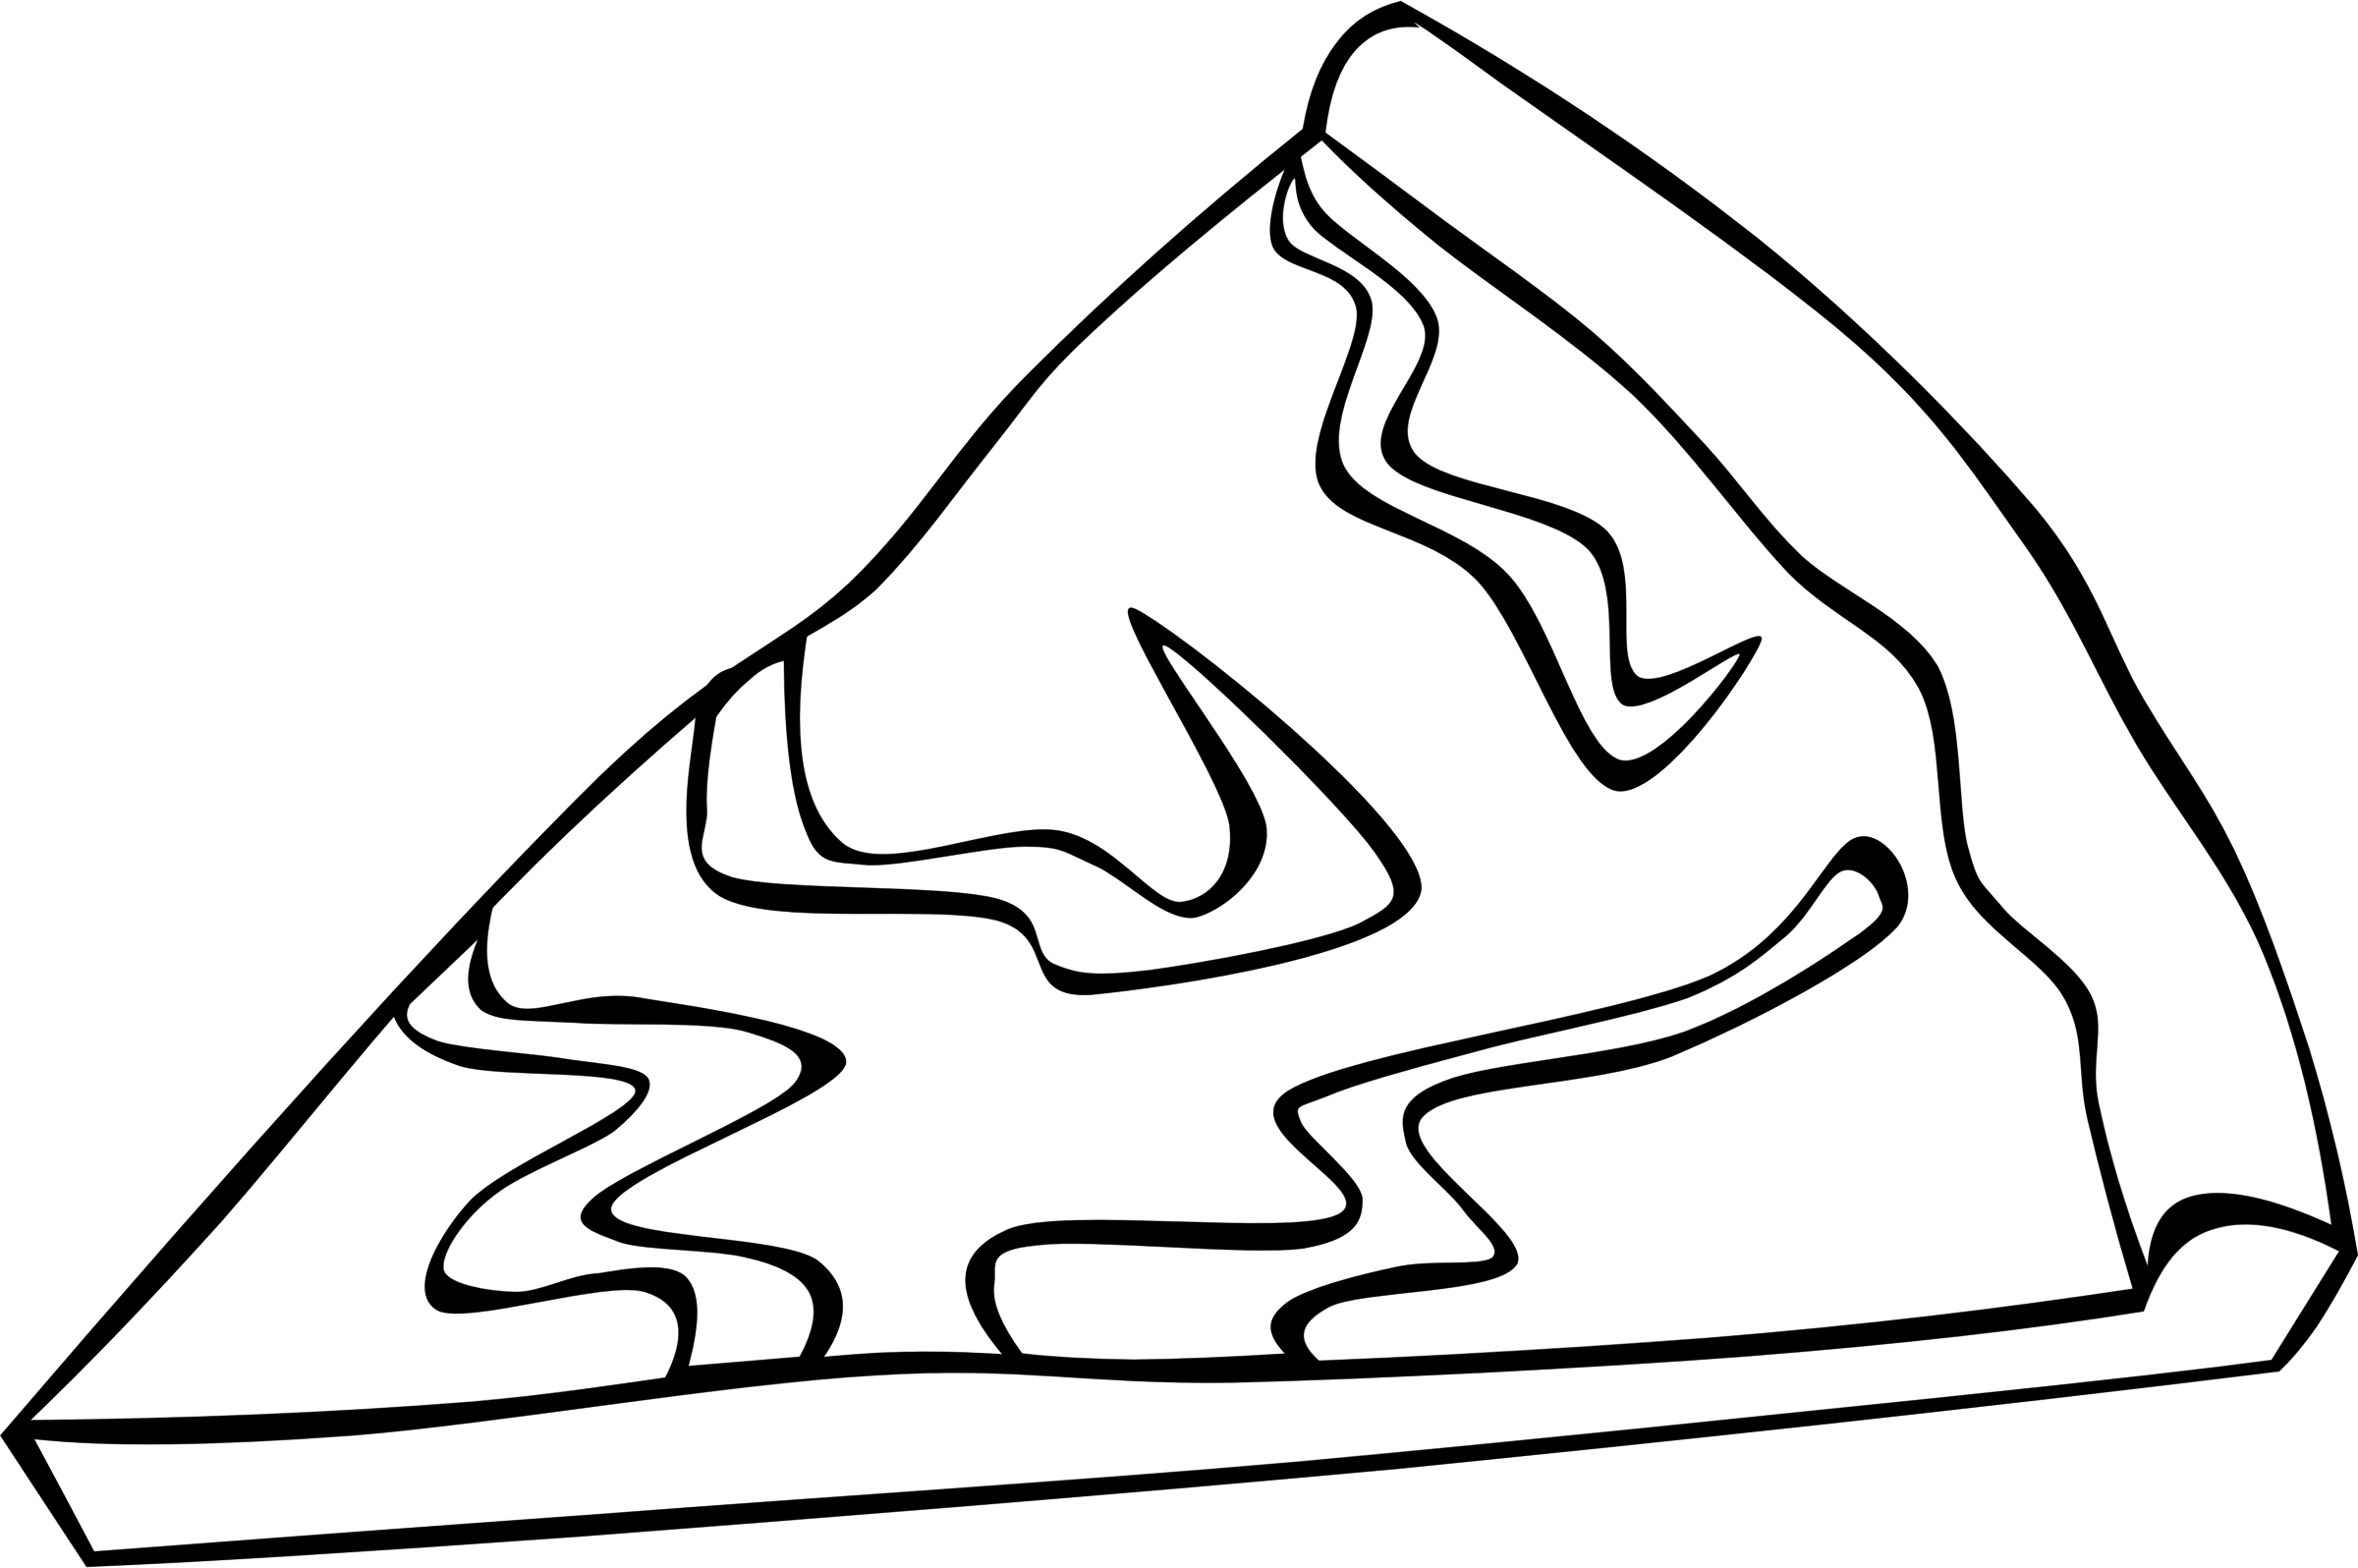 png royalty free library Pizza line drawing at. Snack clipart black and white